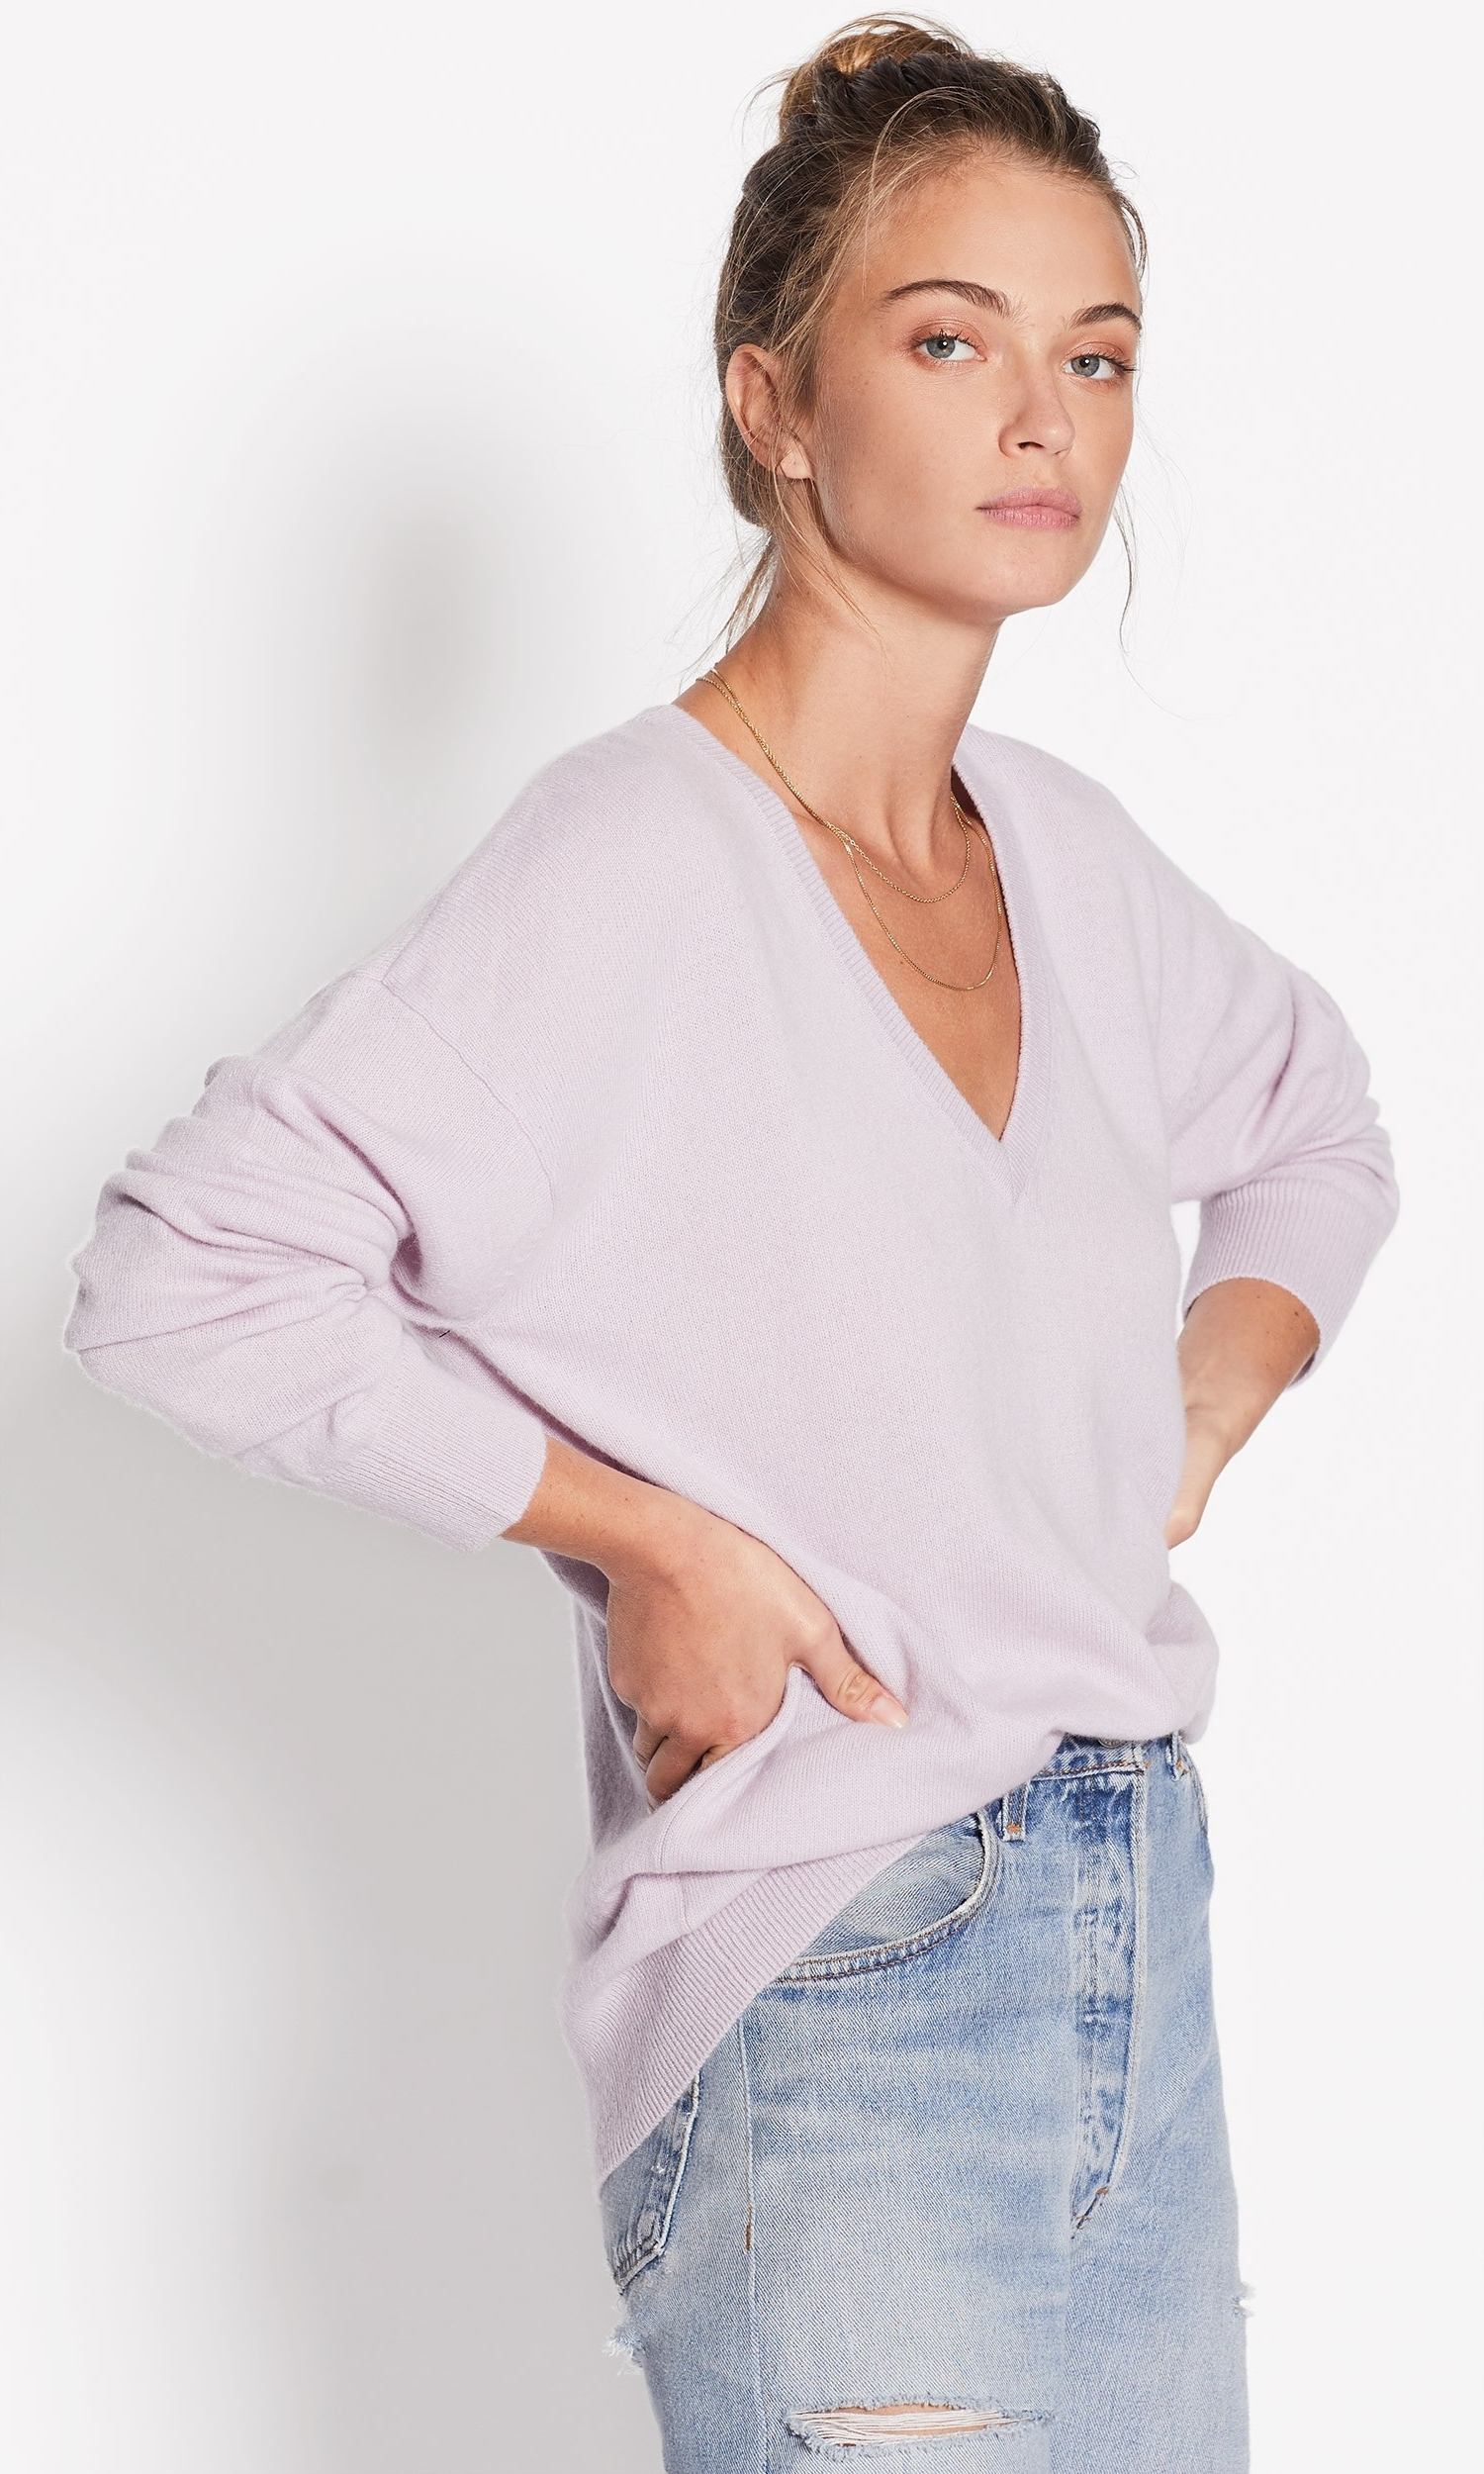 Equipment Lucinda Cashmere V-Neck in $278 USD - In violet (A BIG TREND THIS SEASON), this sumptuous sweater has just the right touch of girly mixed with a masculine oversized shape.